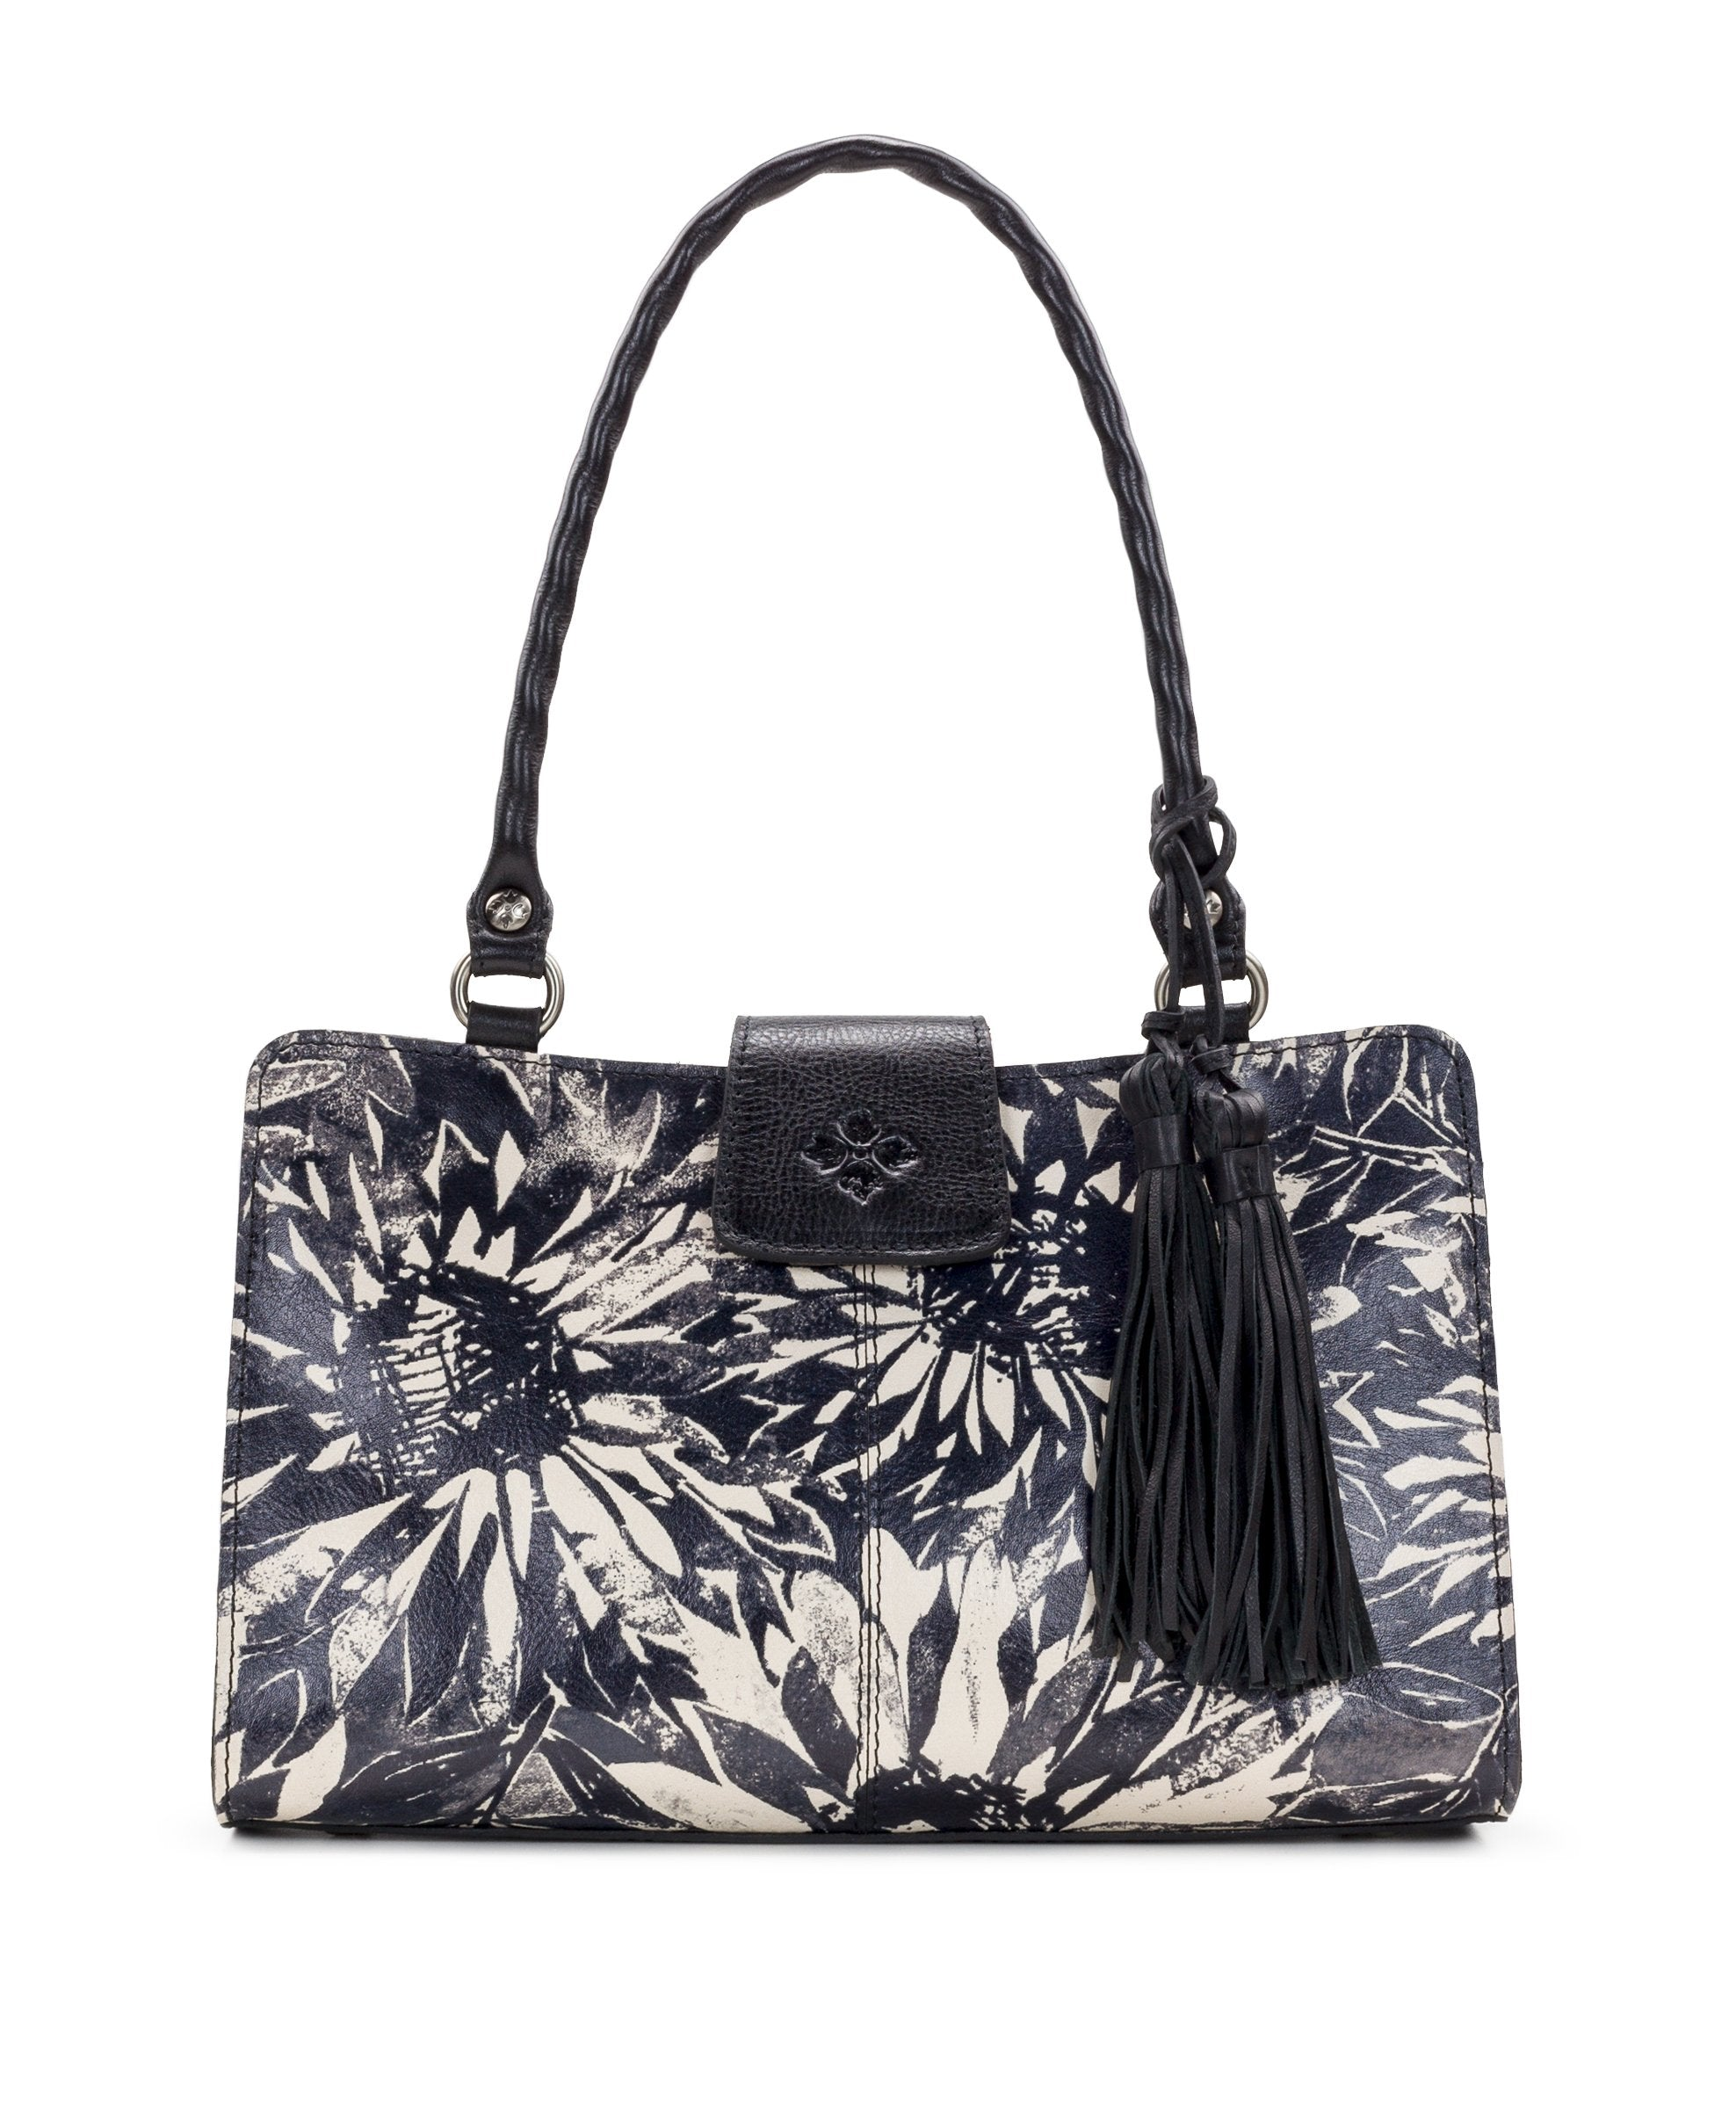 Rienzo Satchel - Sunflower Print